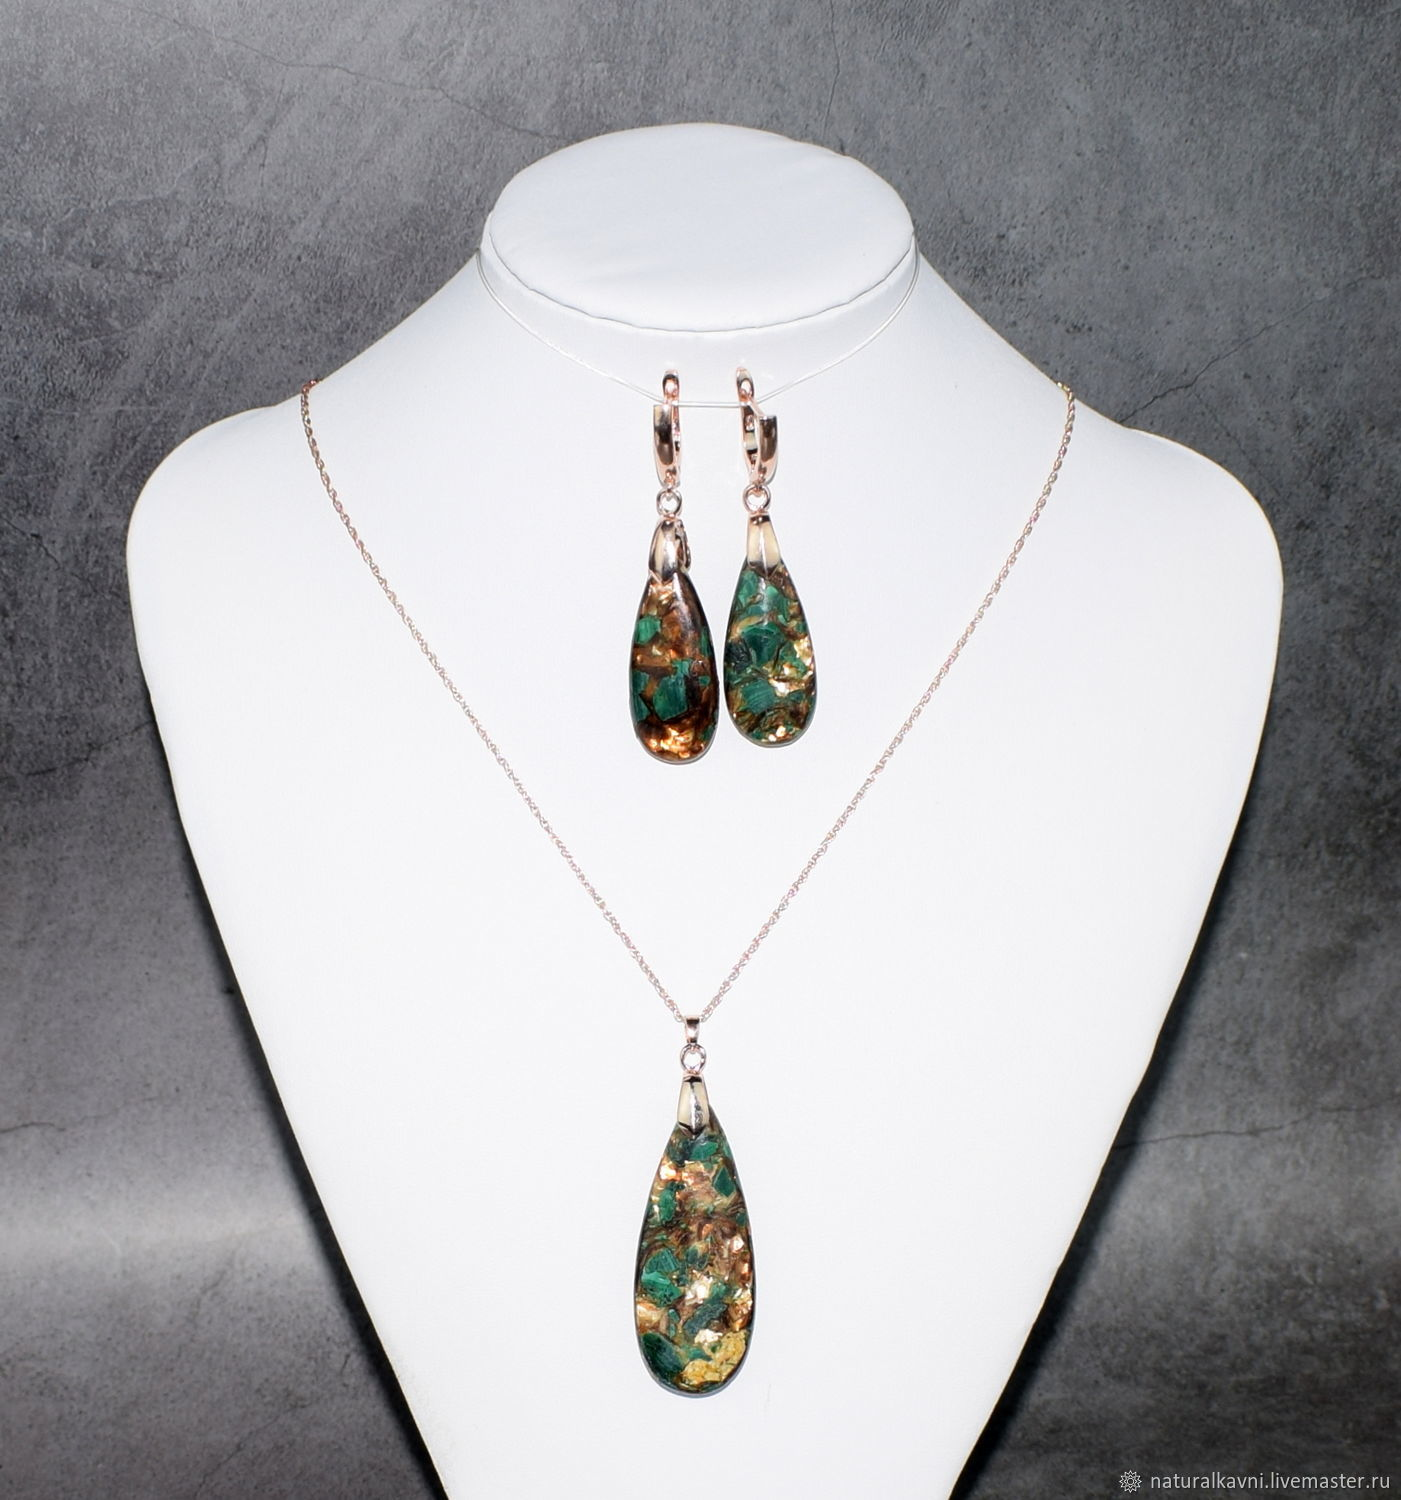 Earrings and pendant made of natural malachite in fuchsia, Jewelry Sets, Moscow,  Фото №1